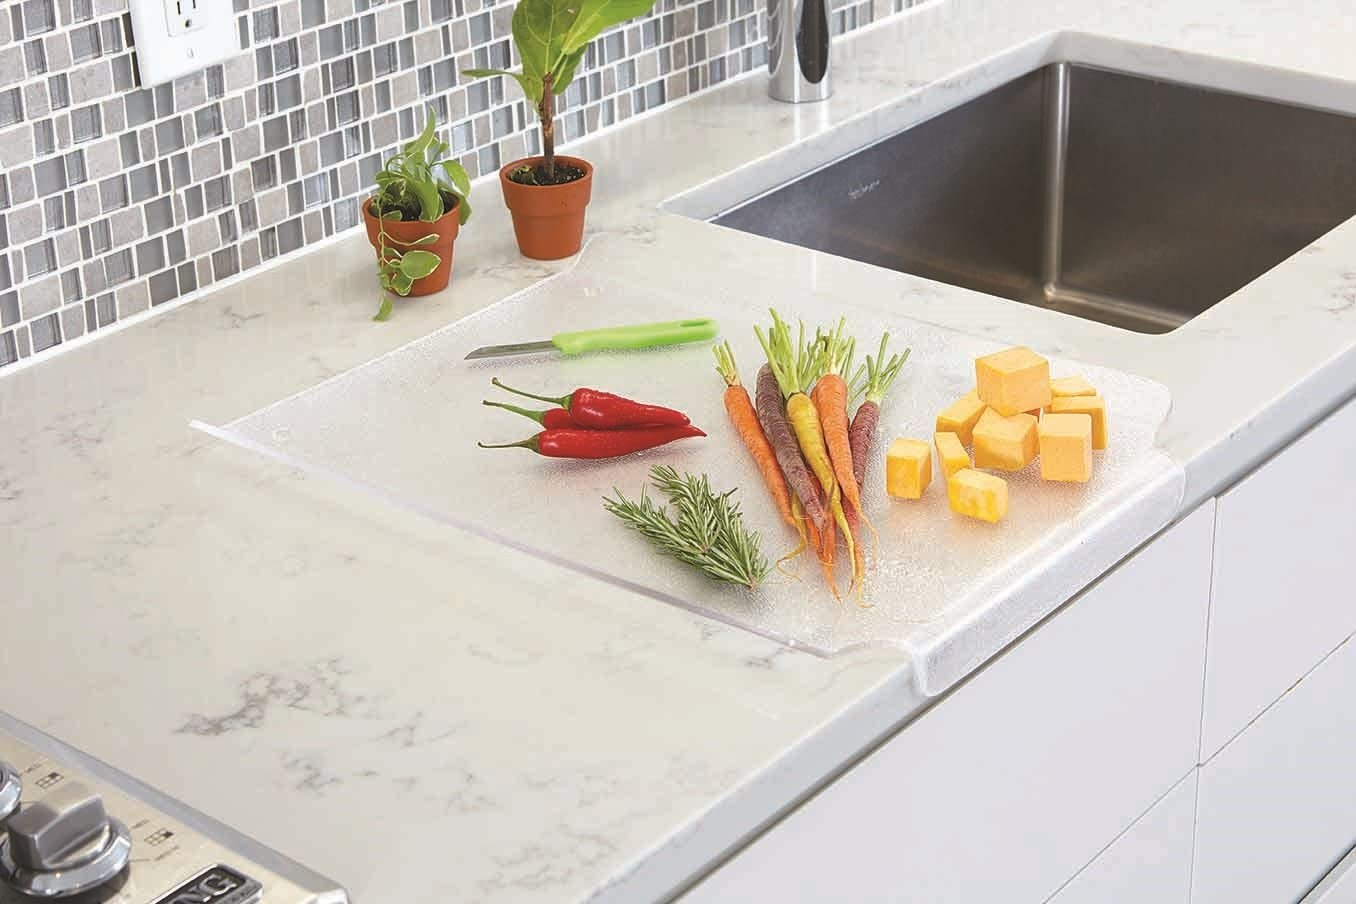 Better Houseware Multi Purpose Drain Board and Cutting Board - Frosted